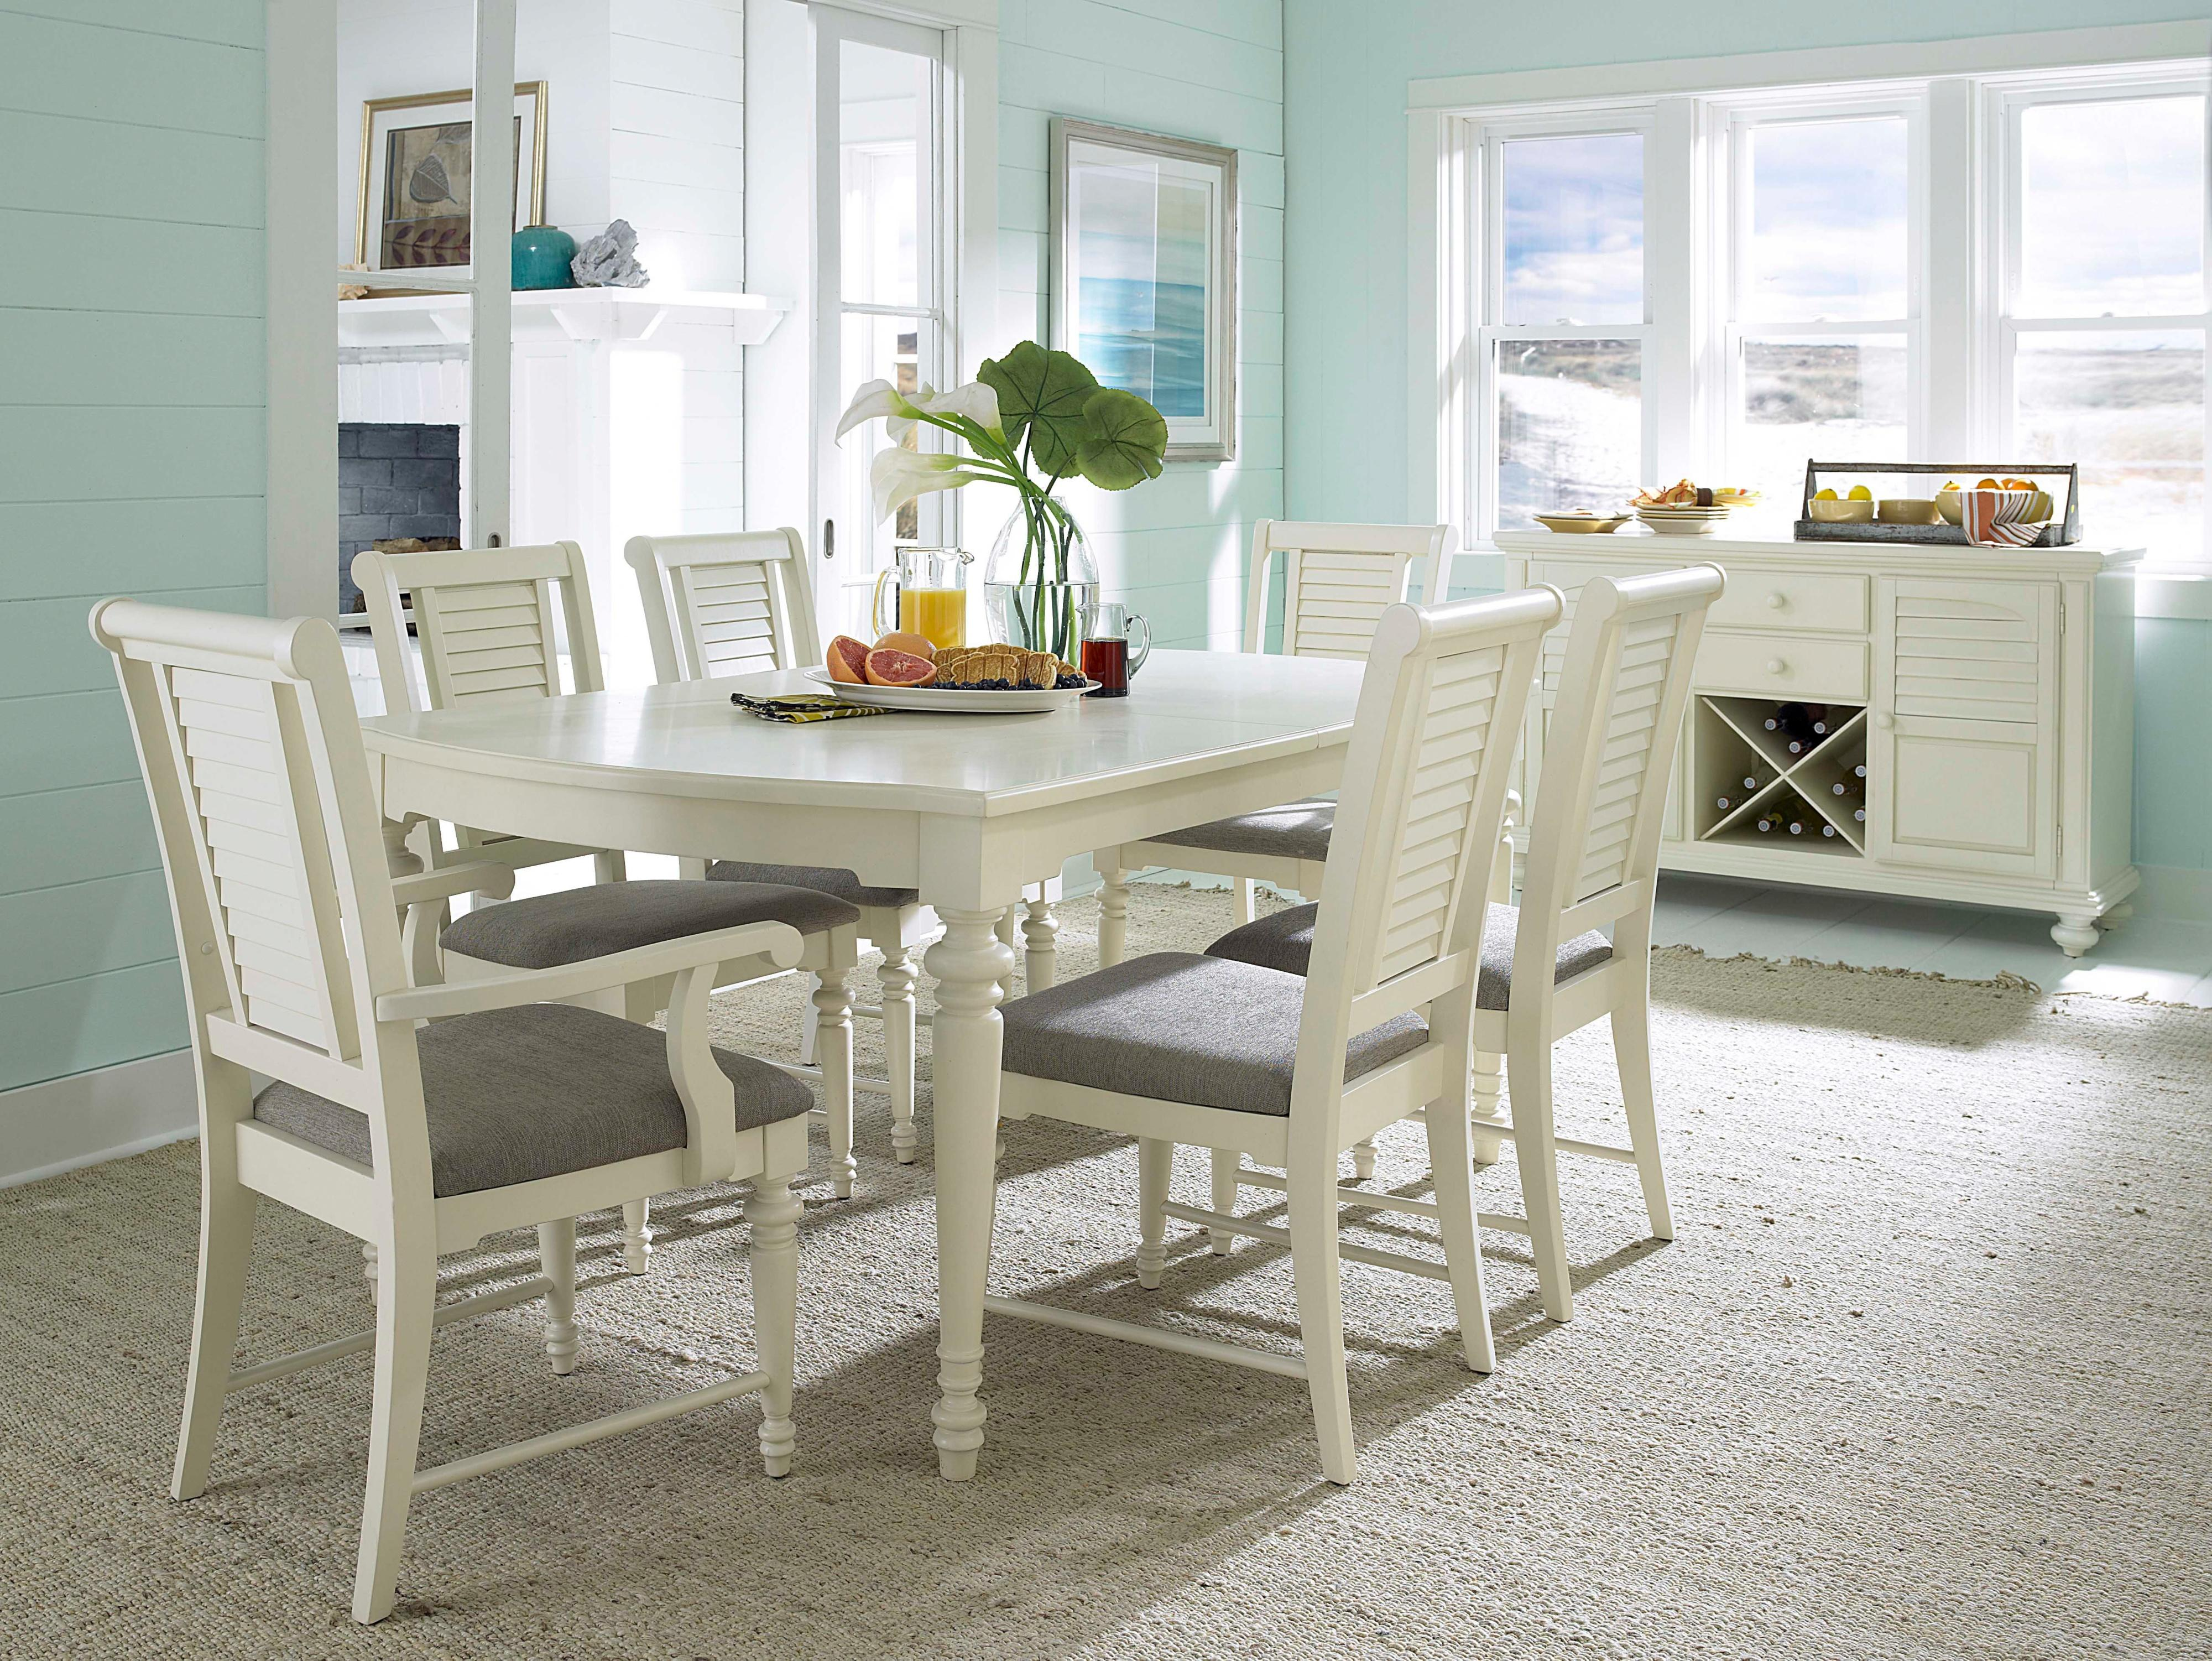 Broyhill Furniture Seabrooke Formal Dining Room Group | Bullard Furniture |  Formal Dining Room Groups Fayetteville, NC